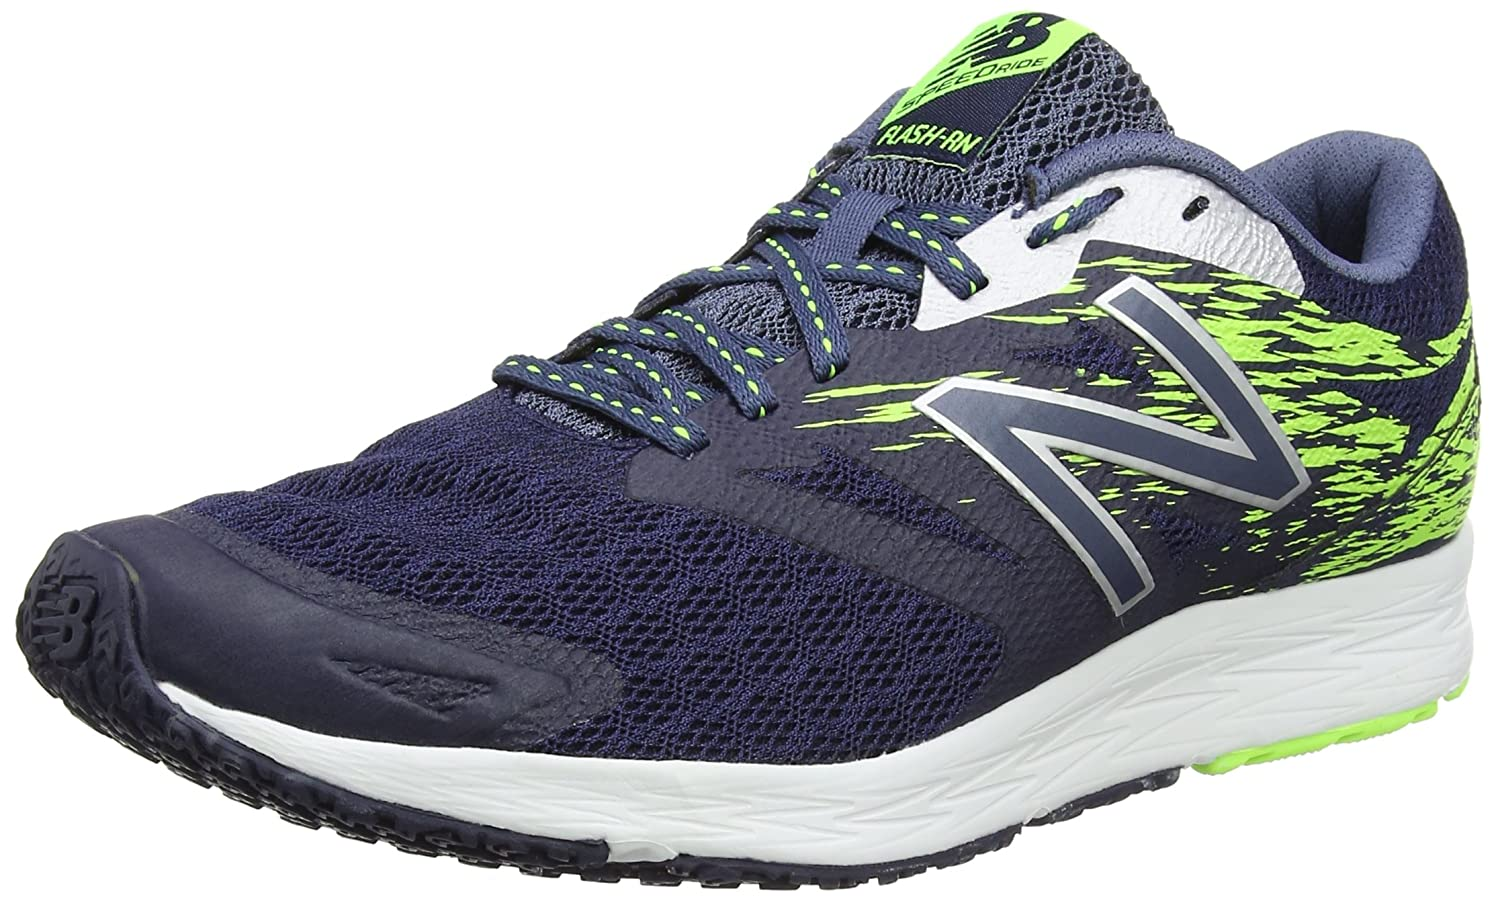 New Balance Men's Flash Fitness Shoes